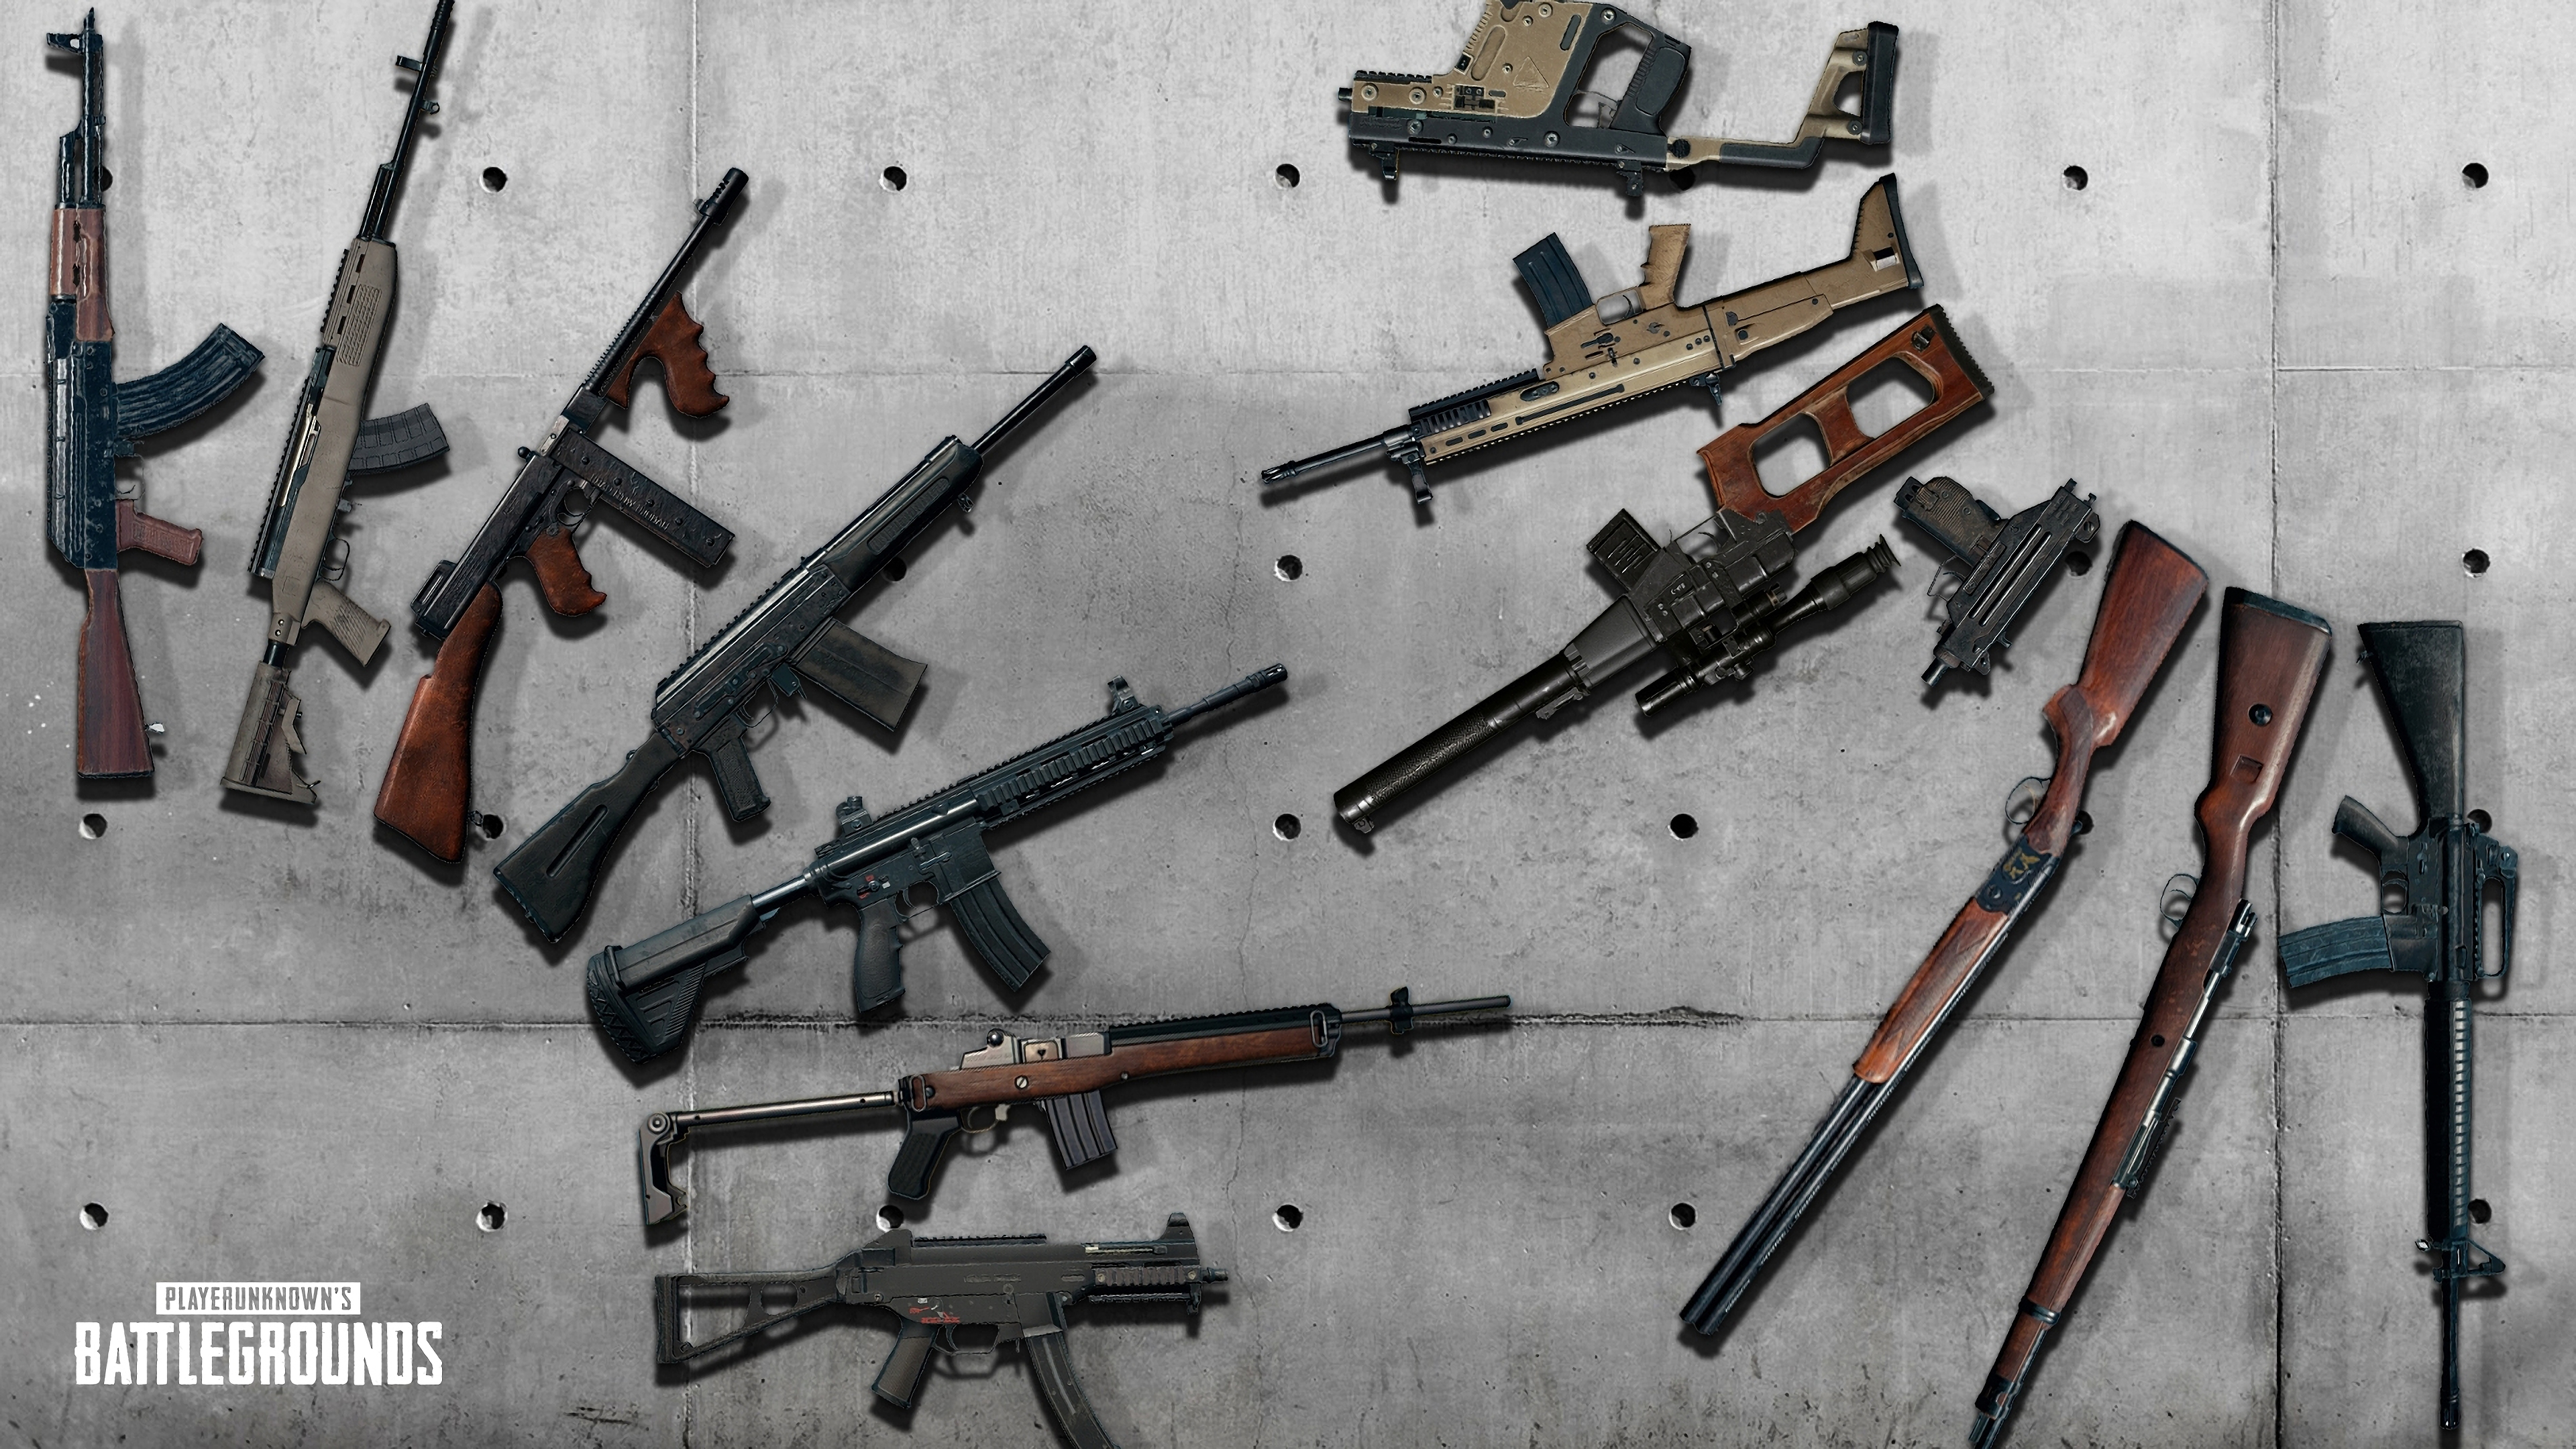 Pubg Sanhok Wallpaper 4k: PUBG Rifles Weapons PlayerUnknown's Battlegrounds 4K